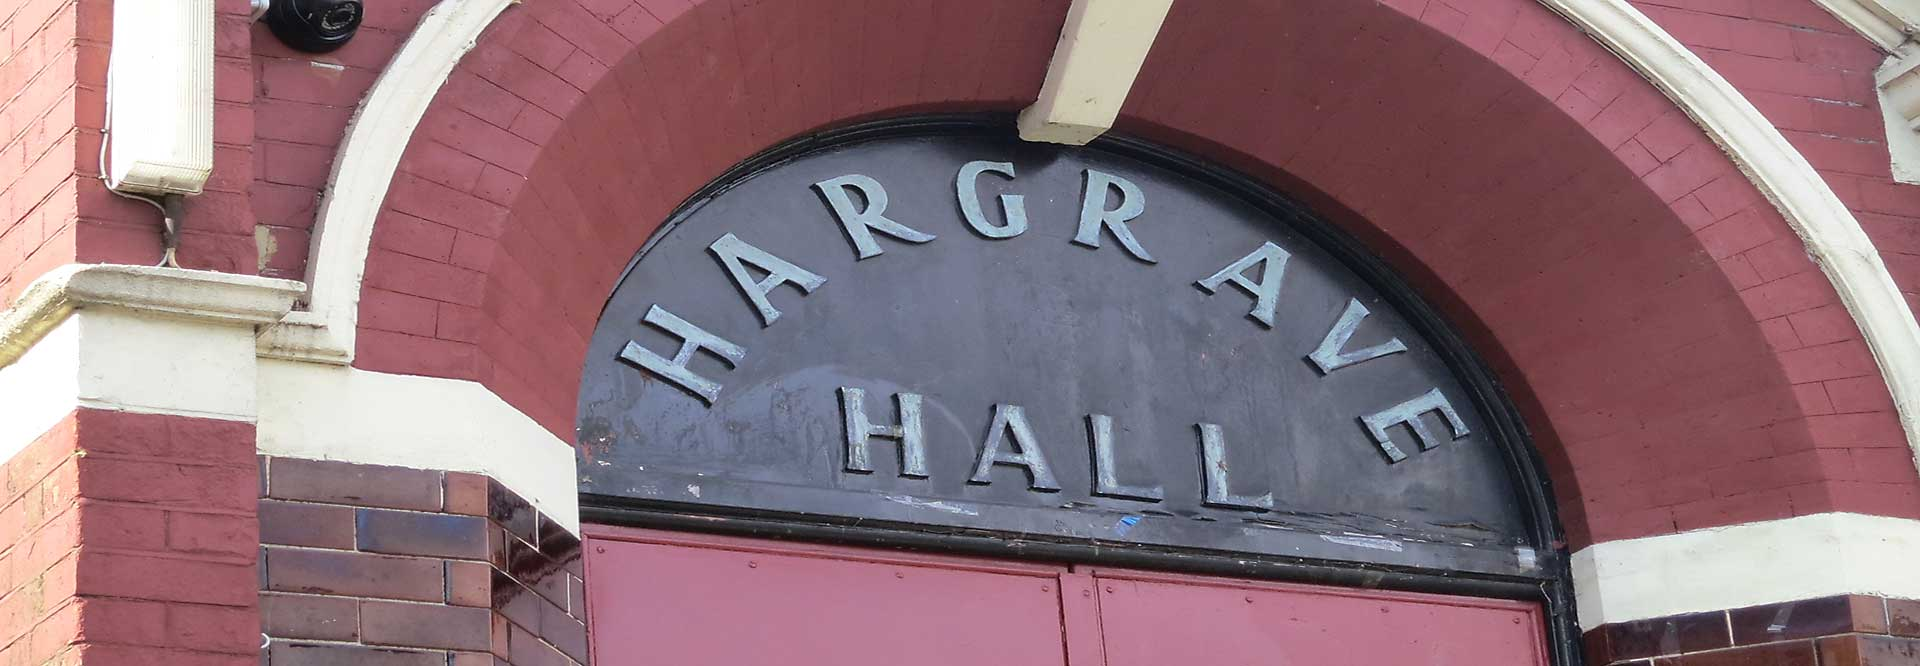 Hargrave Hall London